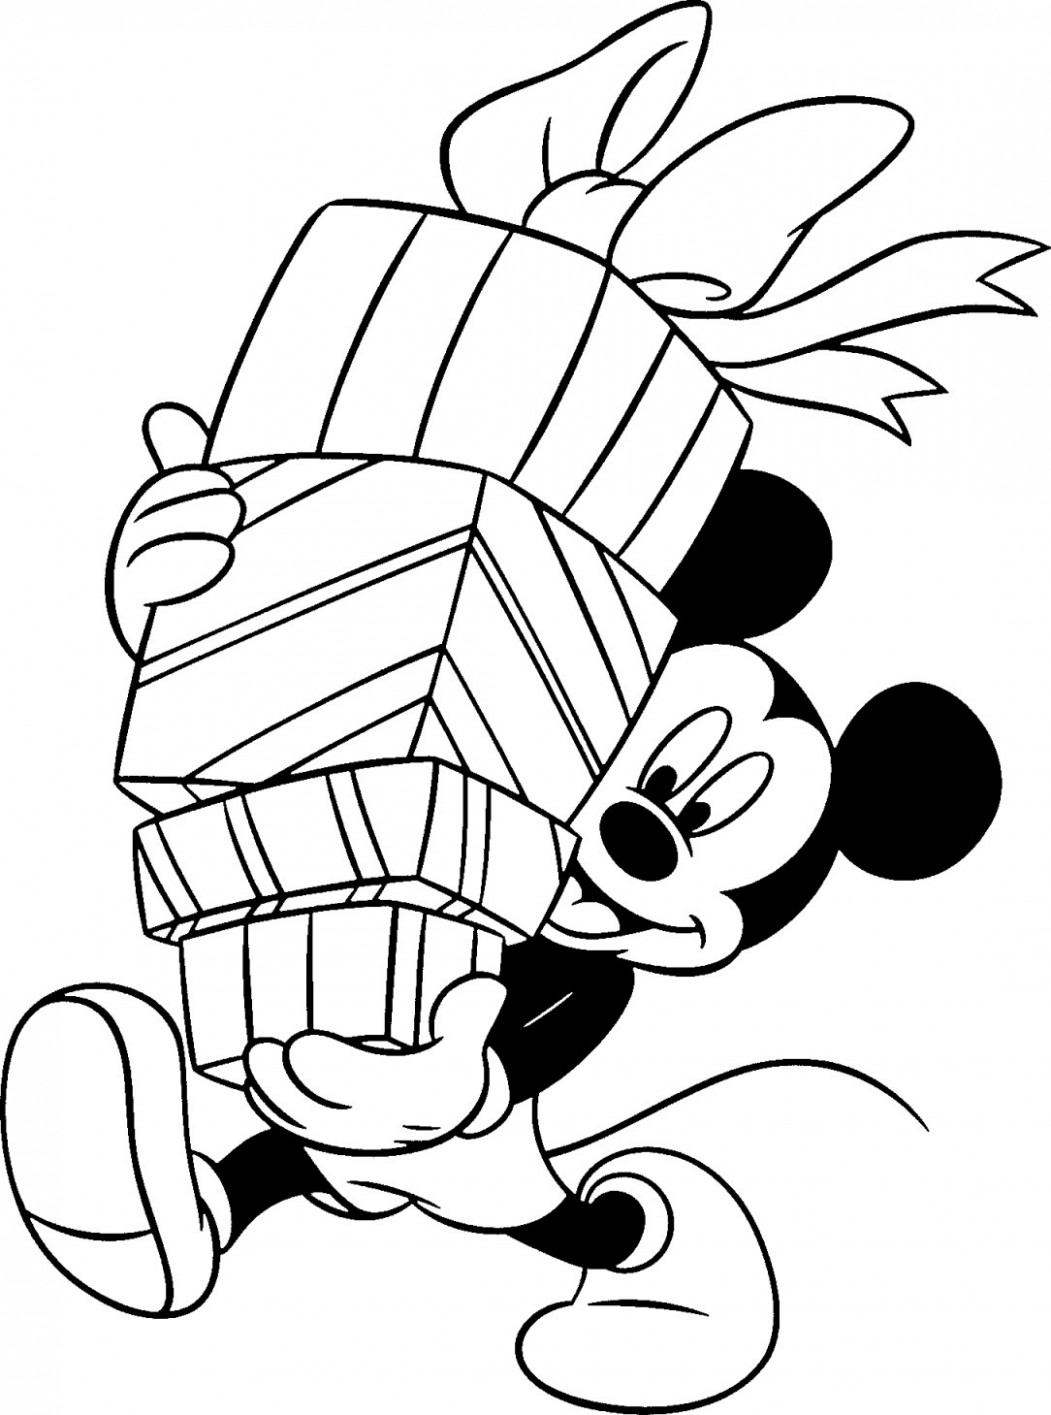 Free Disney Christmas Printable Coloring Pages for Kids – Honey   Lime – Free Mickey Mouse Christmas Coloring Pages To Print